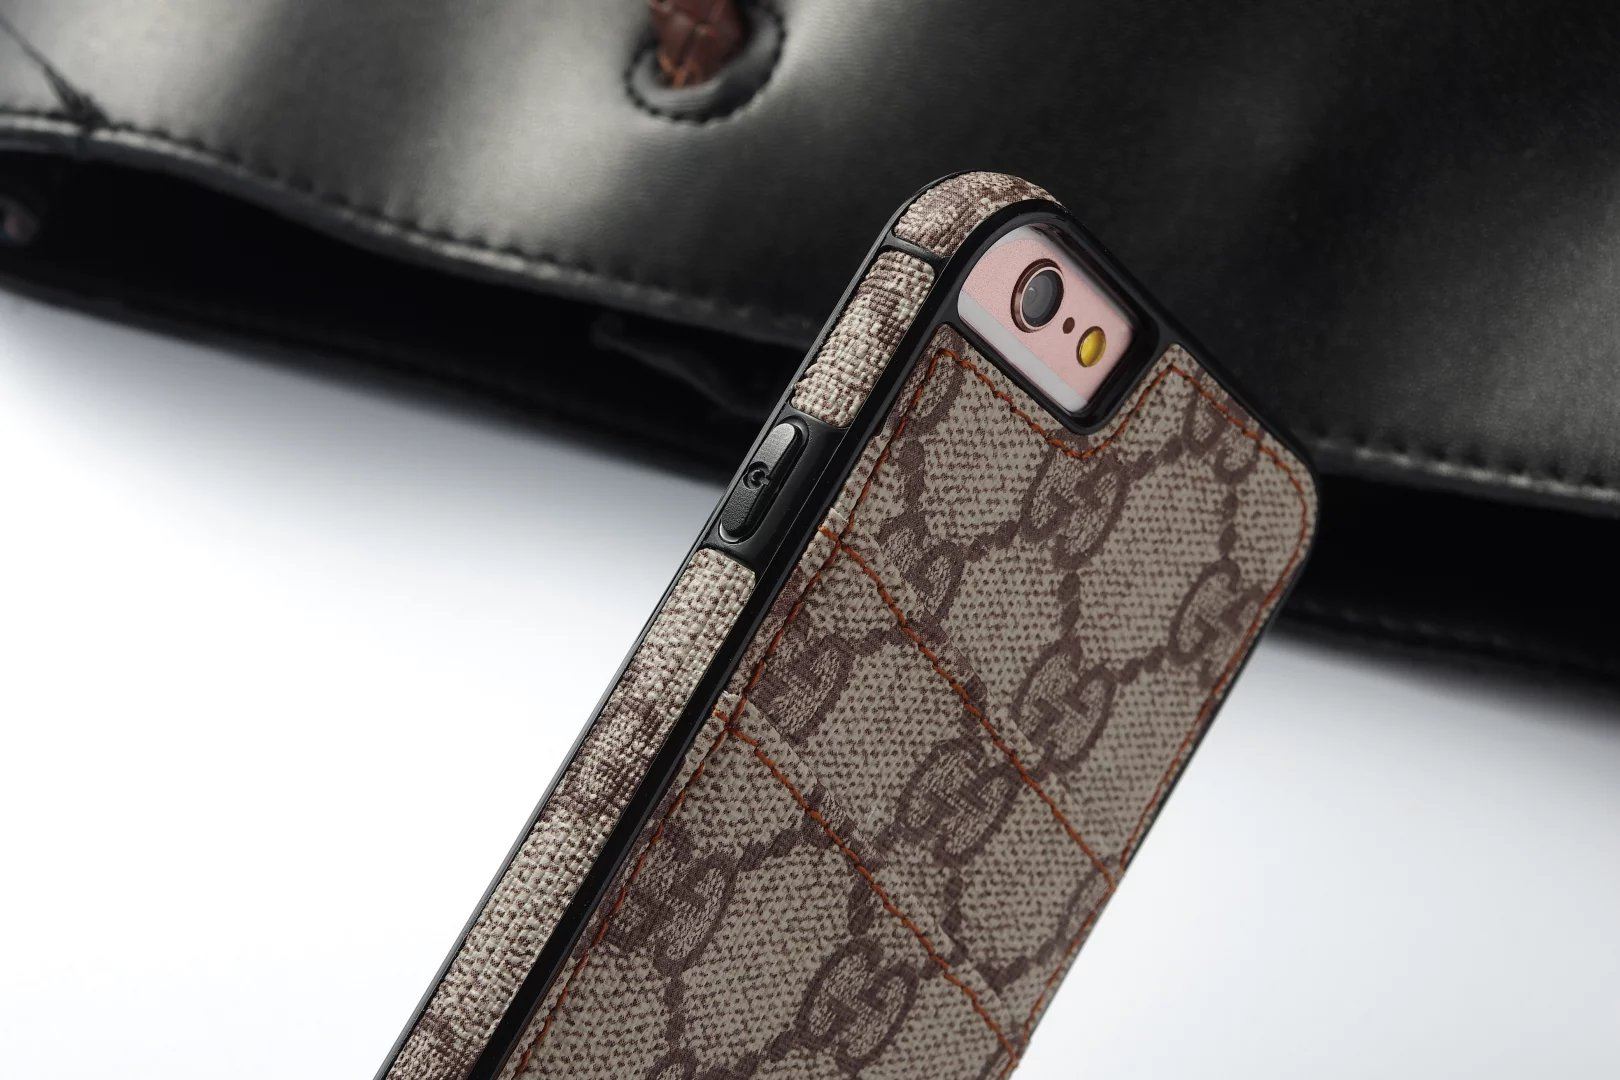 iphone hülle selbst coole iphone hüllen Louis Vuitton iphone 8 hüllen schutzhülle iphone 8 test handy flip cover 8lbst gestalten individuelle iphone hülle iphone foto datum iphone8 hülle iphone 8 ganzkörper hülle